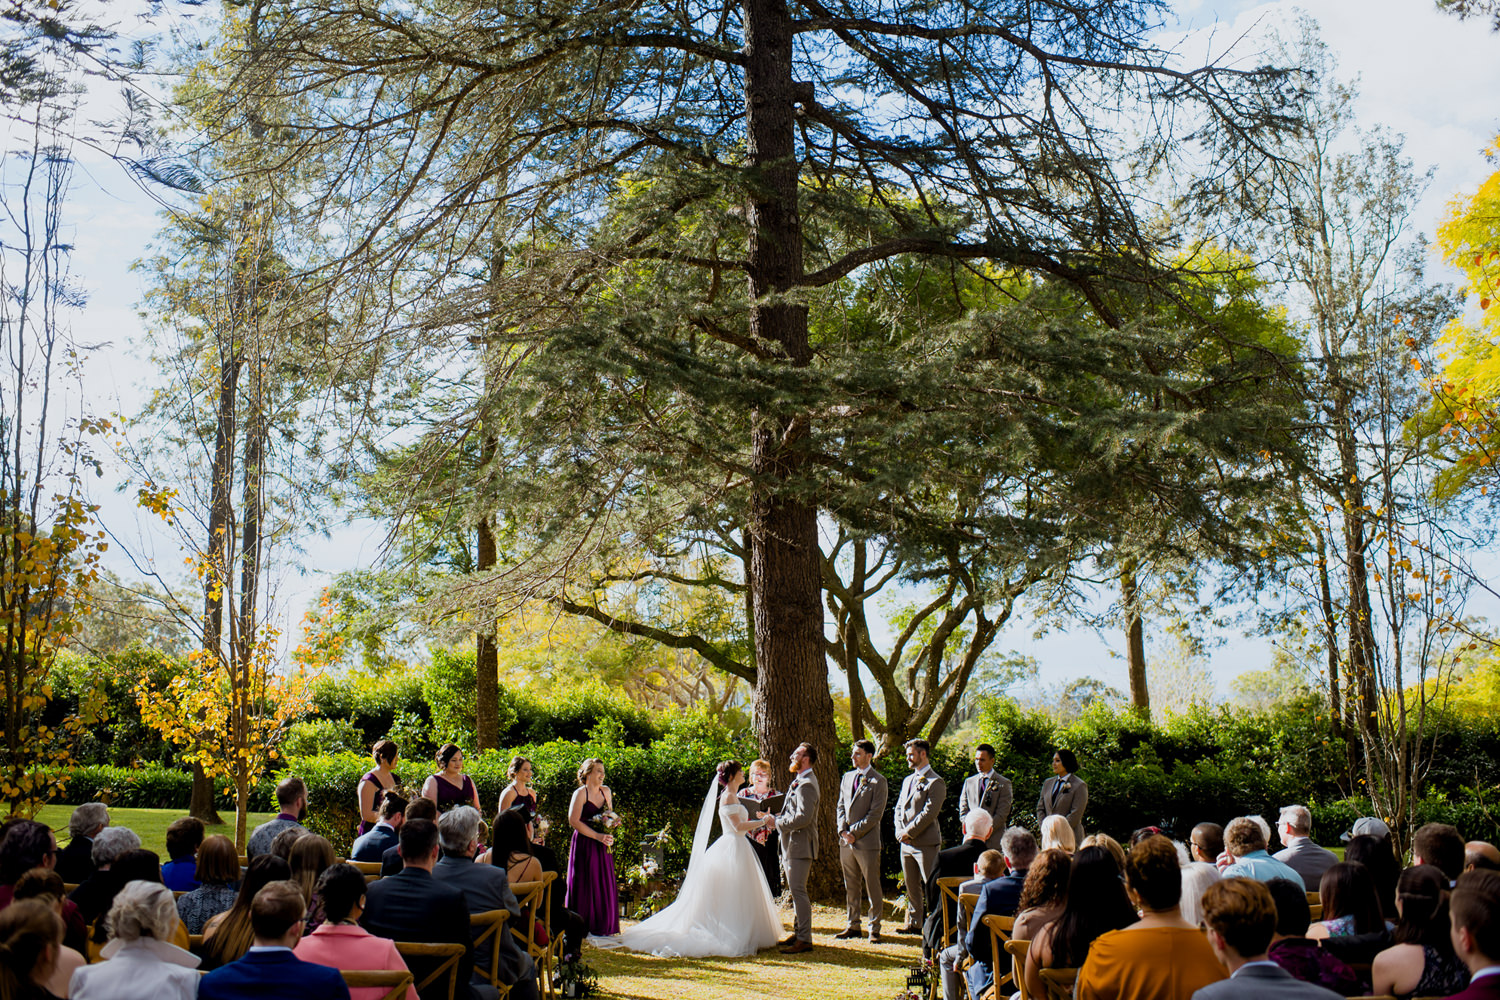 Wedding ceremony under a large leafy green tree in a garden